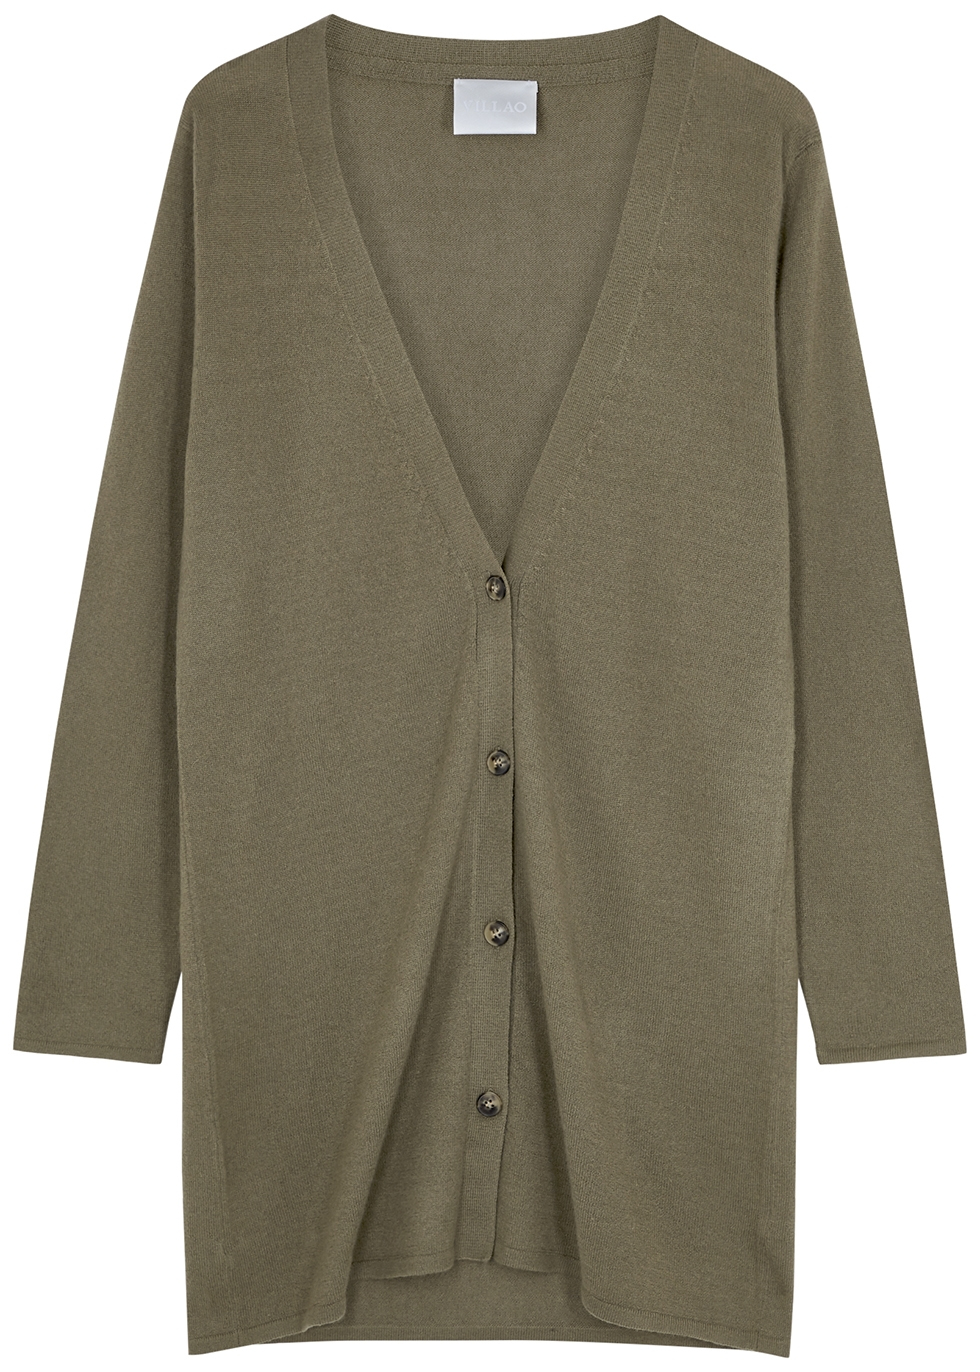 Army green cashmere cardigan